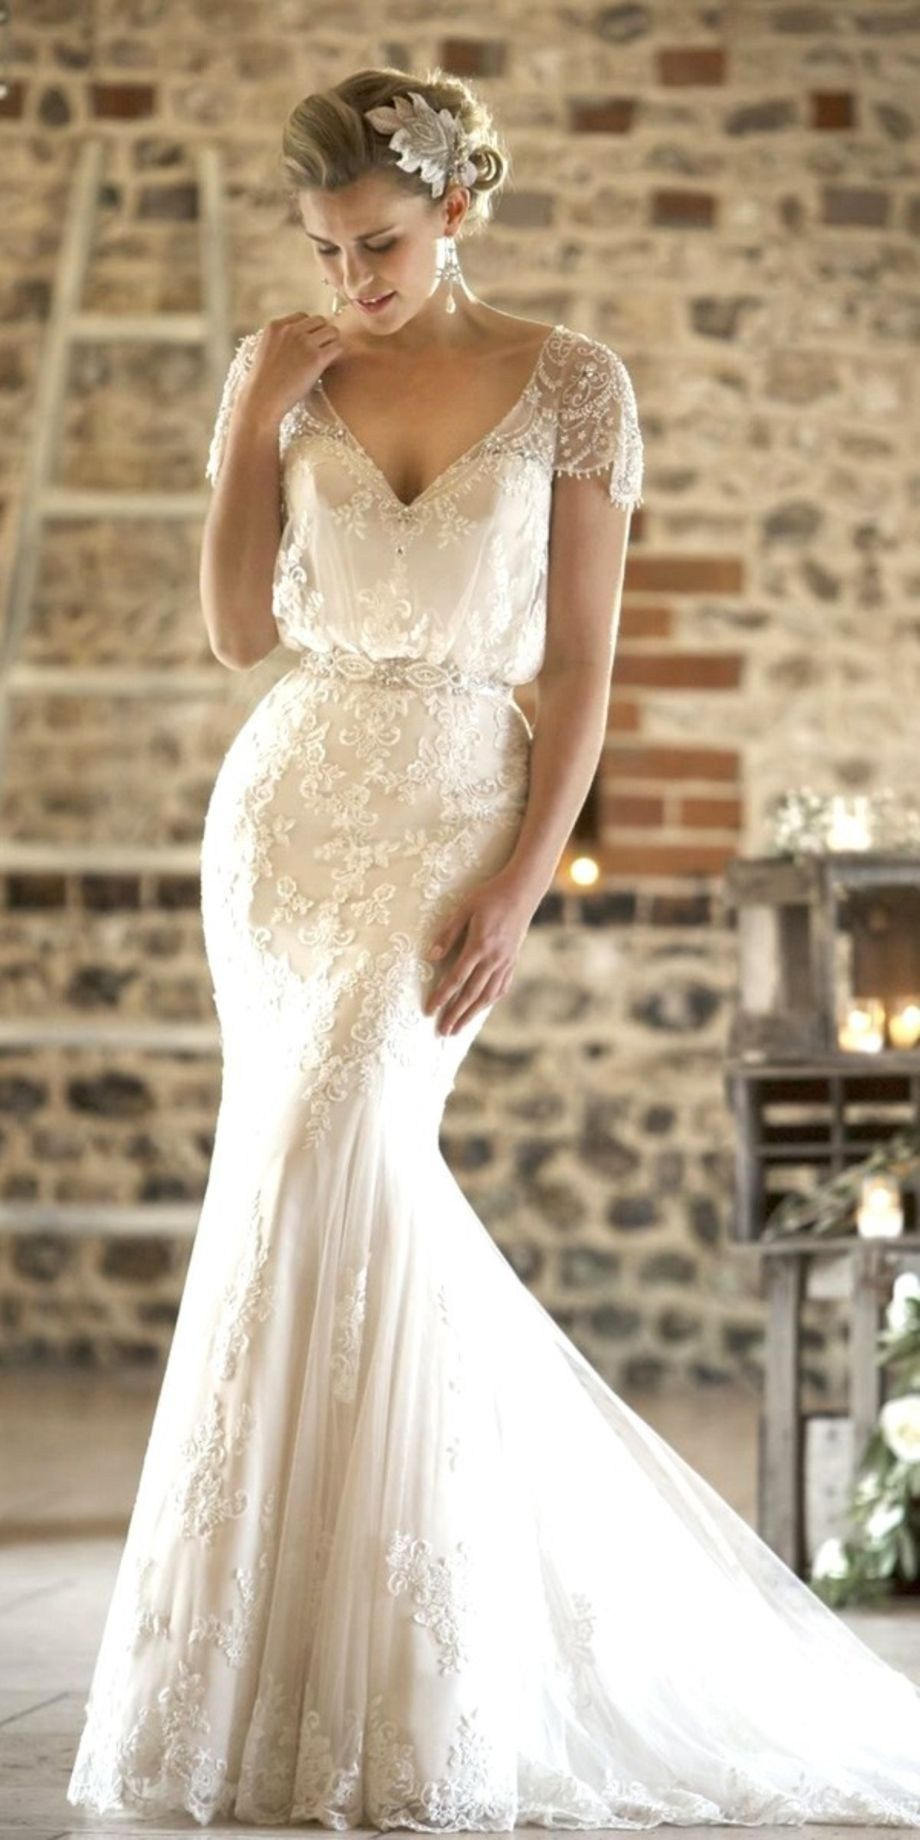 Sleeve wedding dress wedding dress dress ideas and wedding